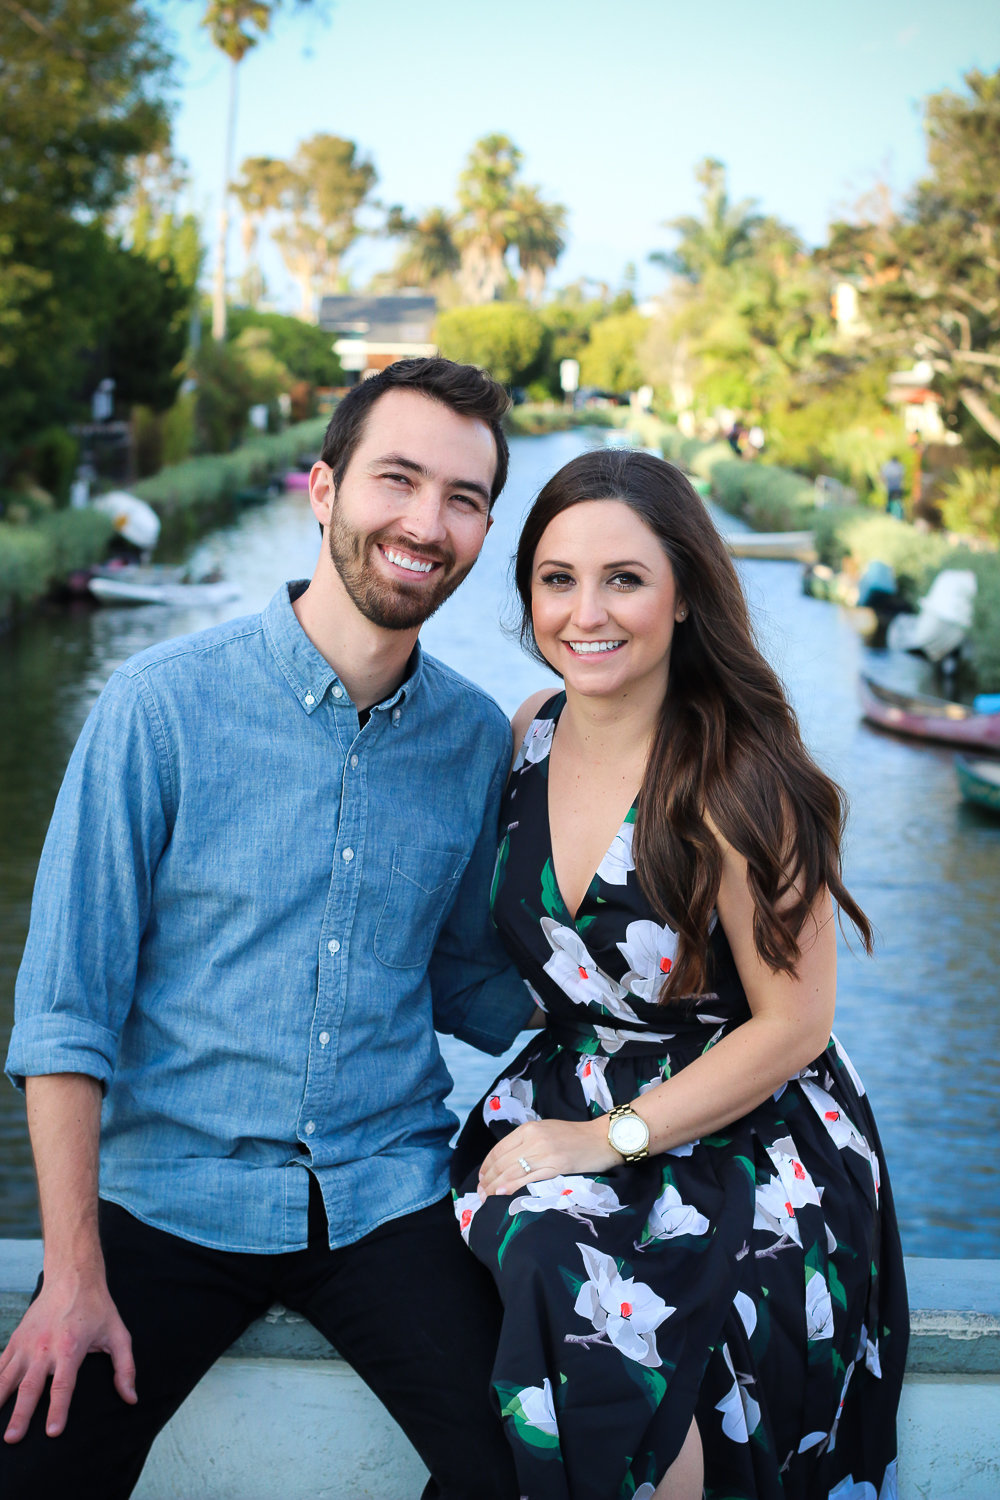 Engagement photos for couple at Venice Canals